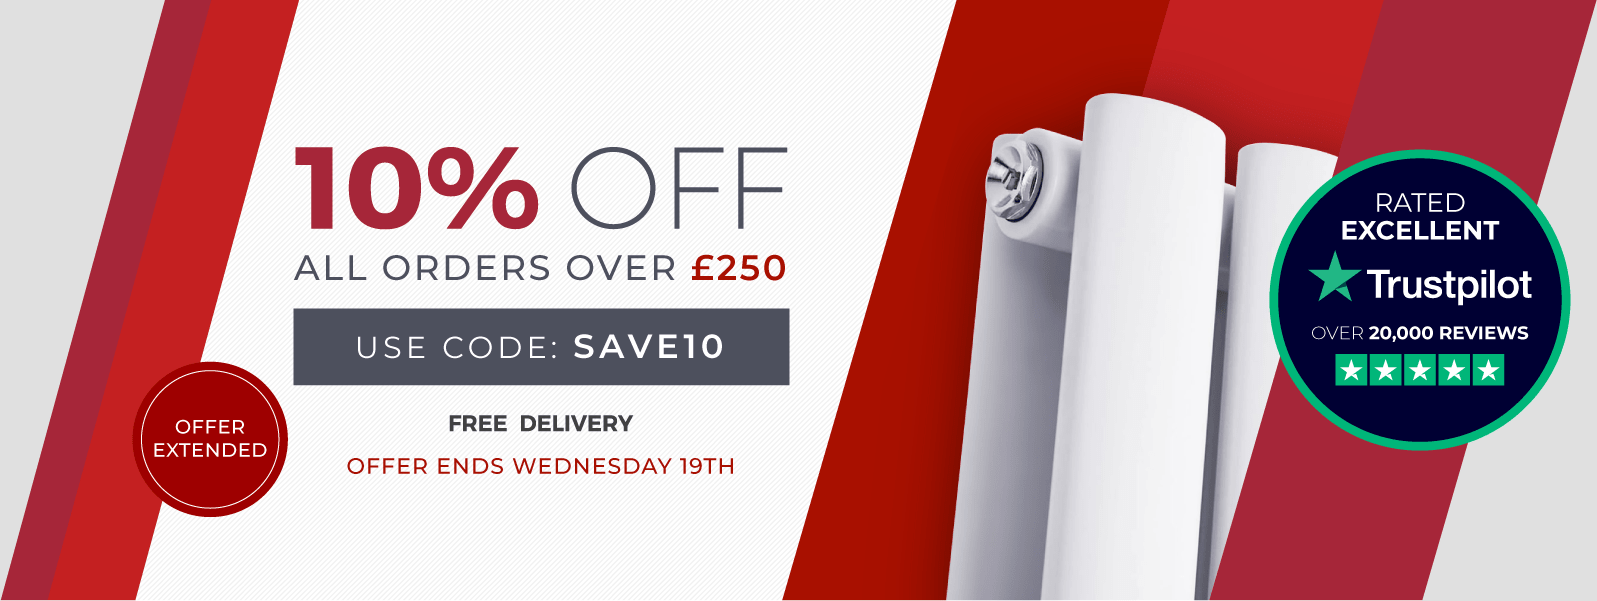 10% Off All Orders Over £250 Use Code: SAVE10  Shop Now  Free Delivery  Offer Extended To Wednesday 19th June